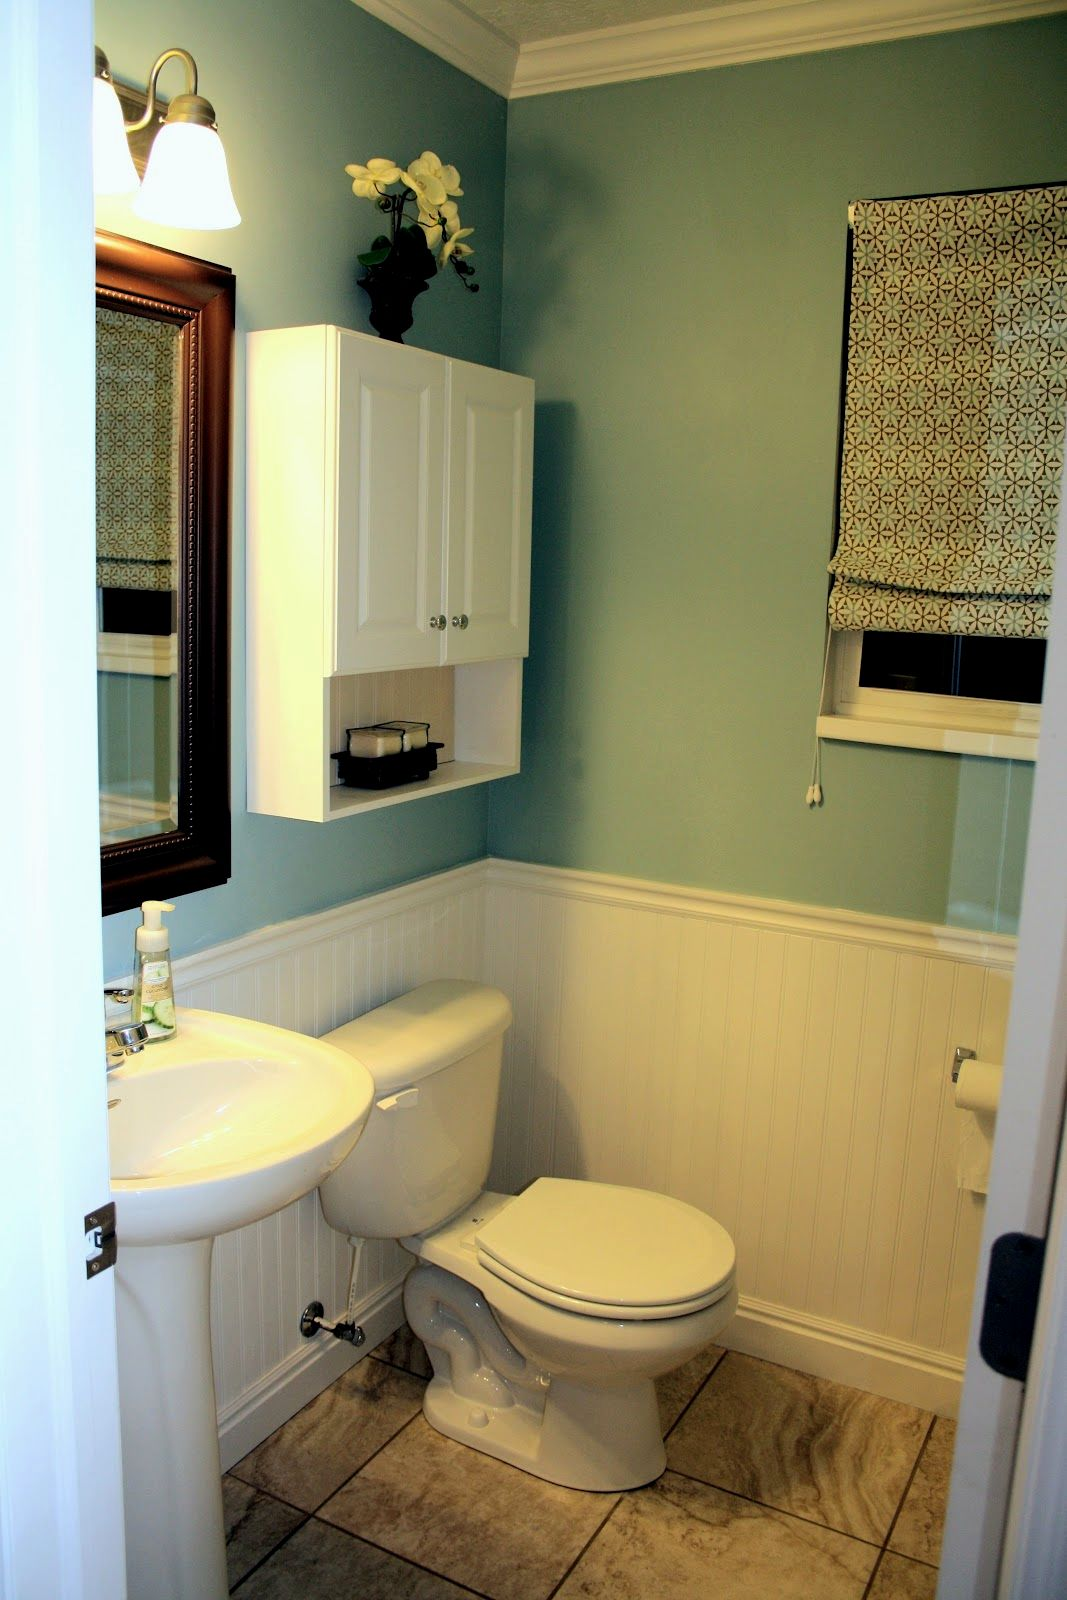 inspirational bathroom remodel pictures pattern-Lovely Bathroom Remodel Pictures Online